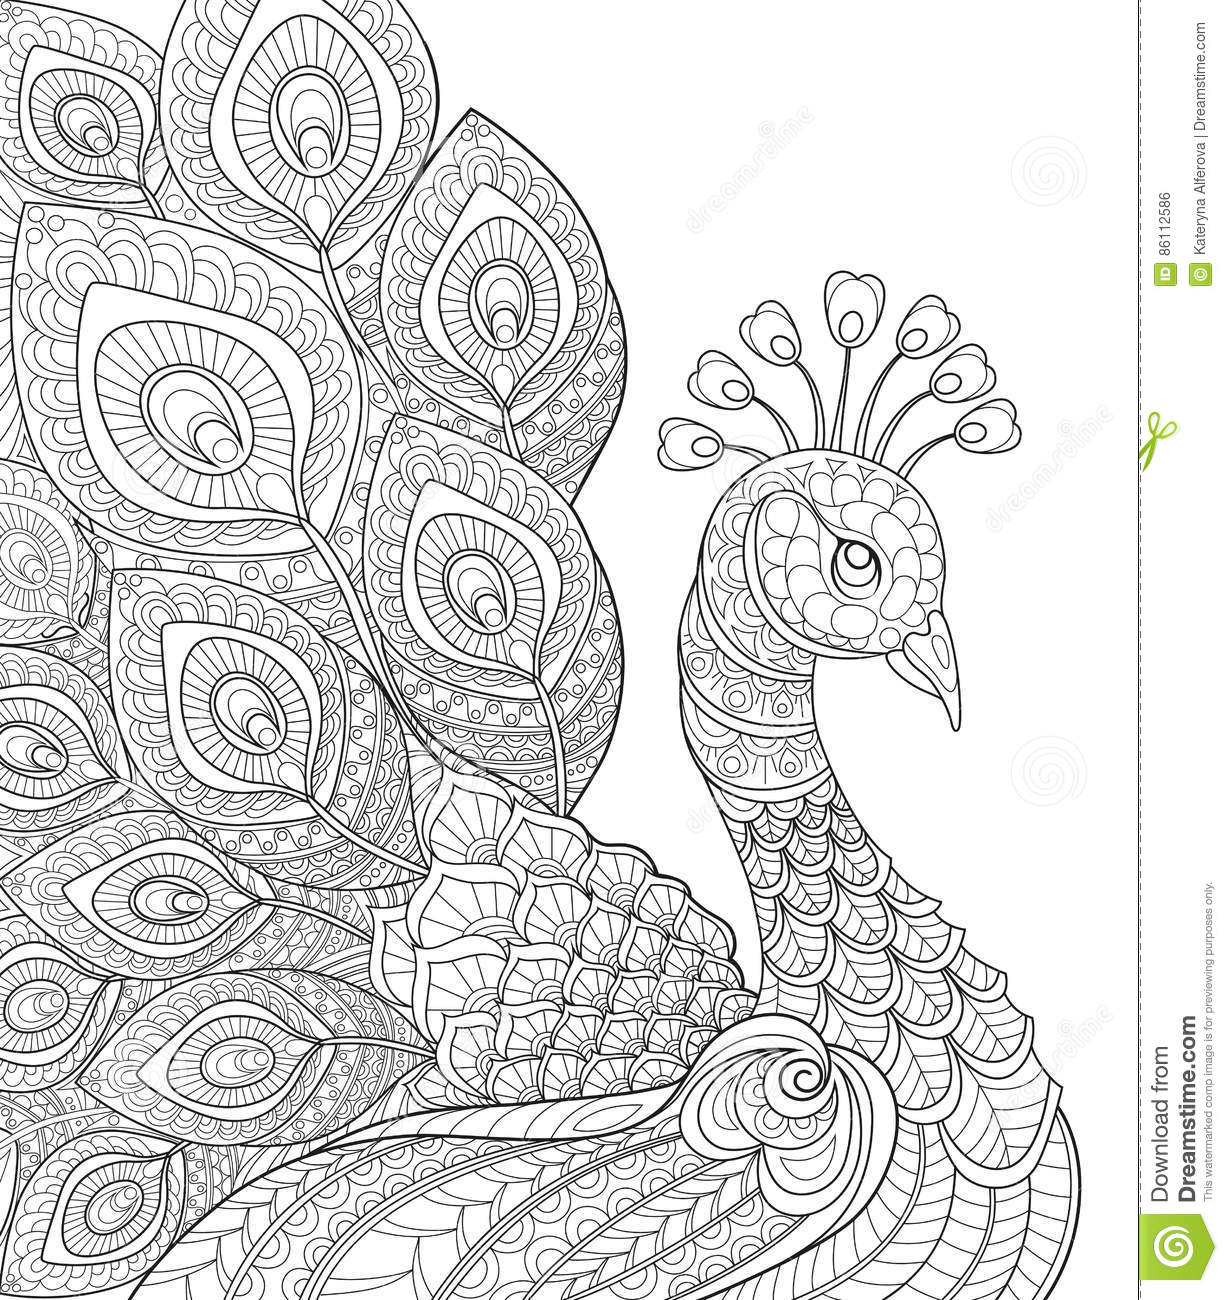 Adult coloring pages black and white ~ Peacock. Adult Antistress Coloring Page. Black And White ...